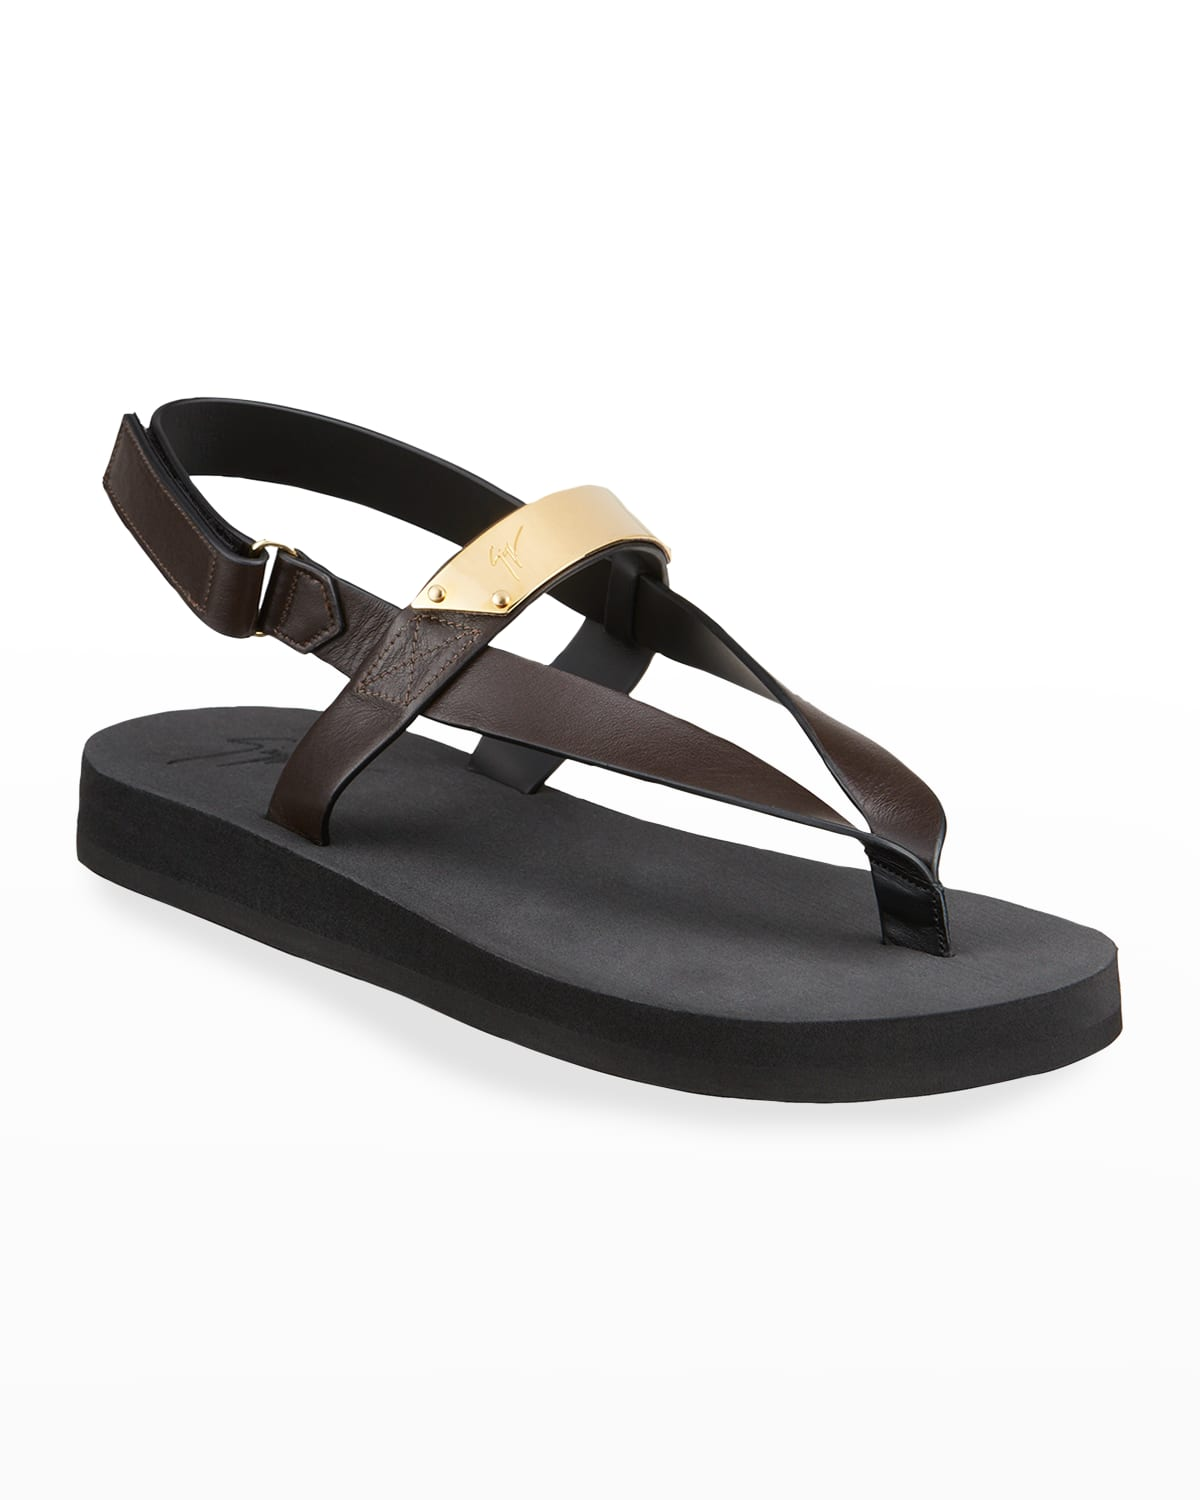 Men's San Diego Leather Thong Sandals